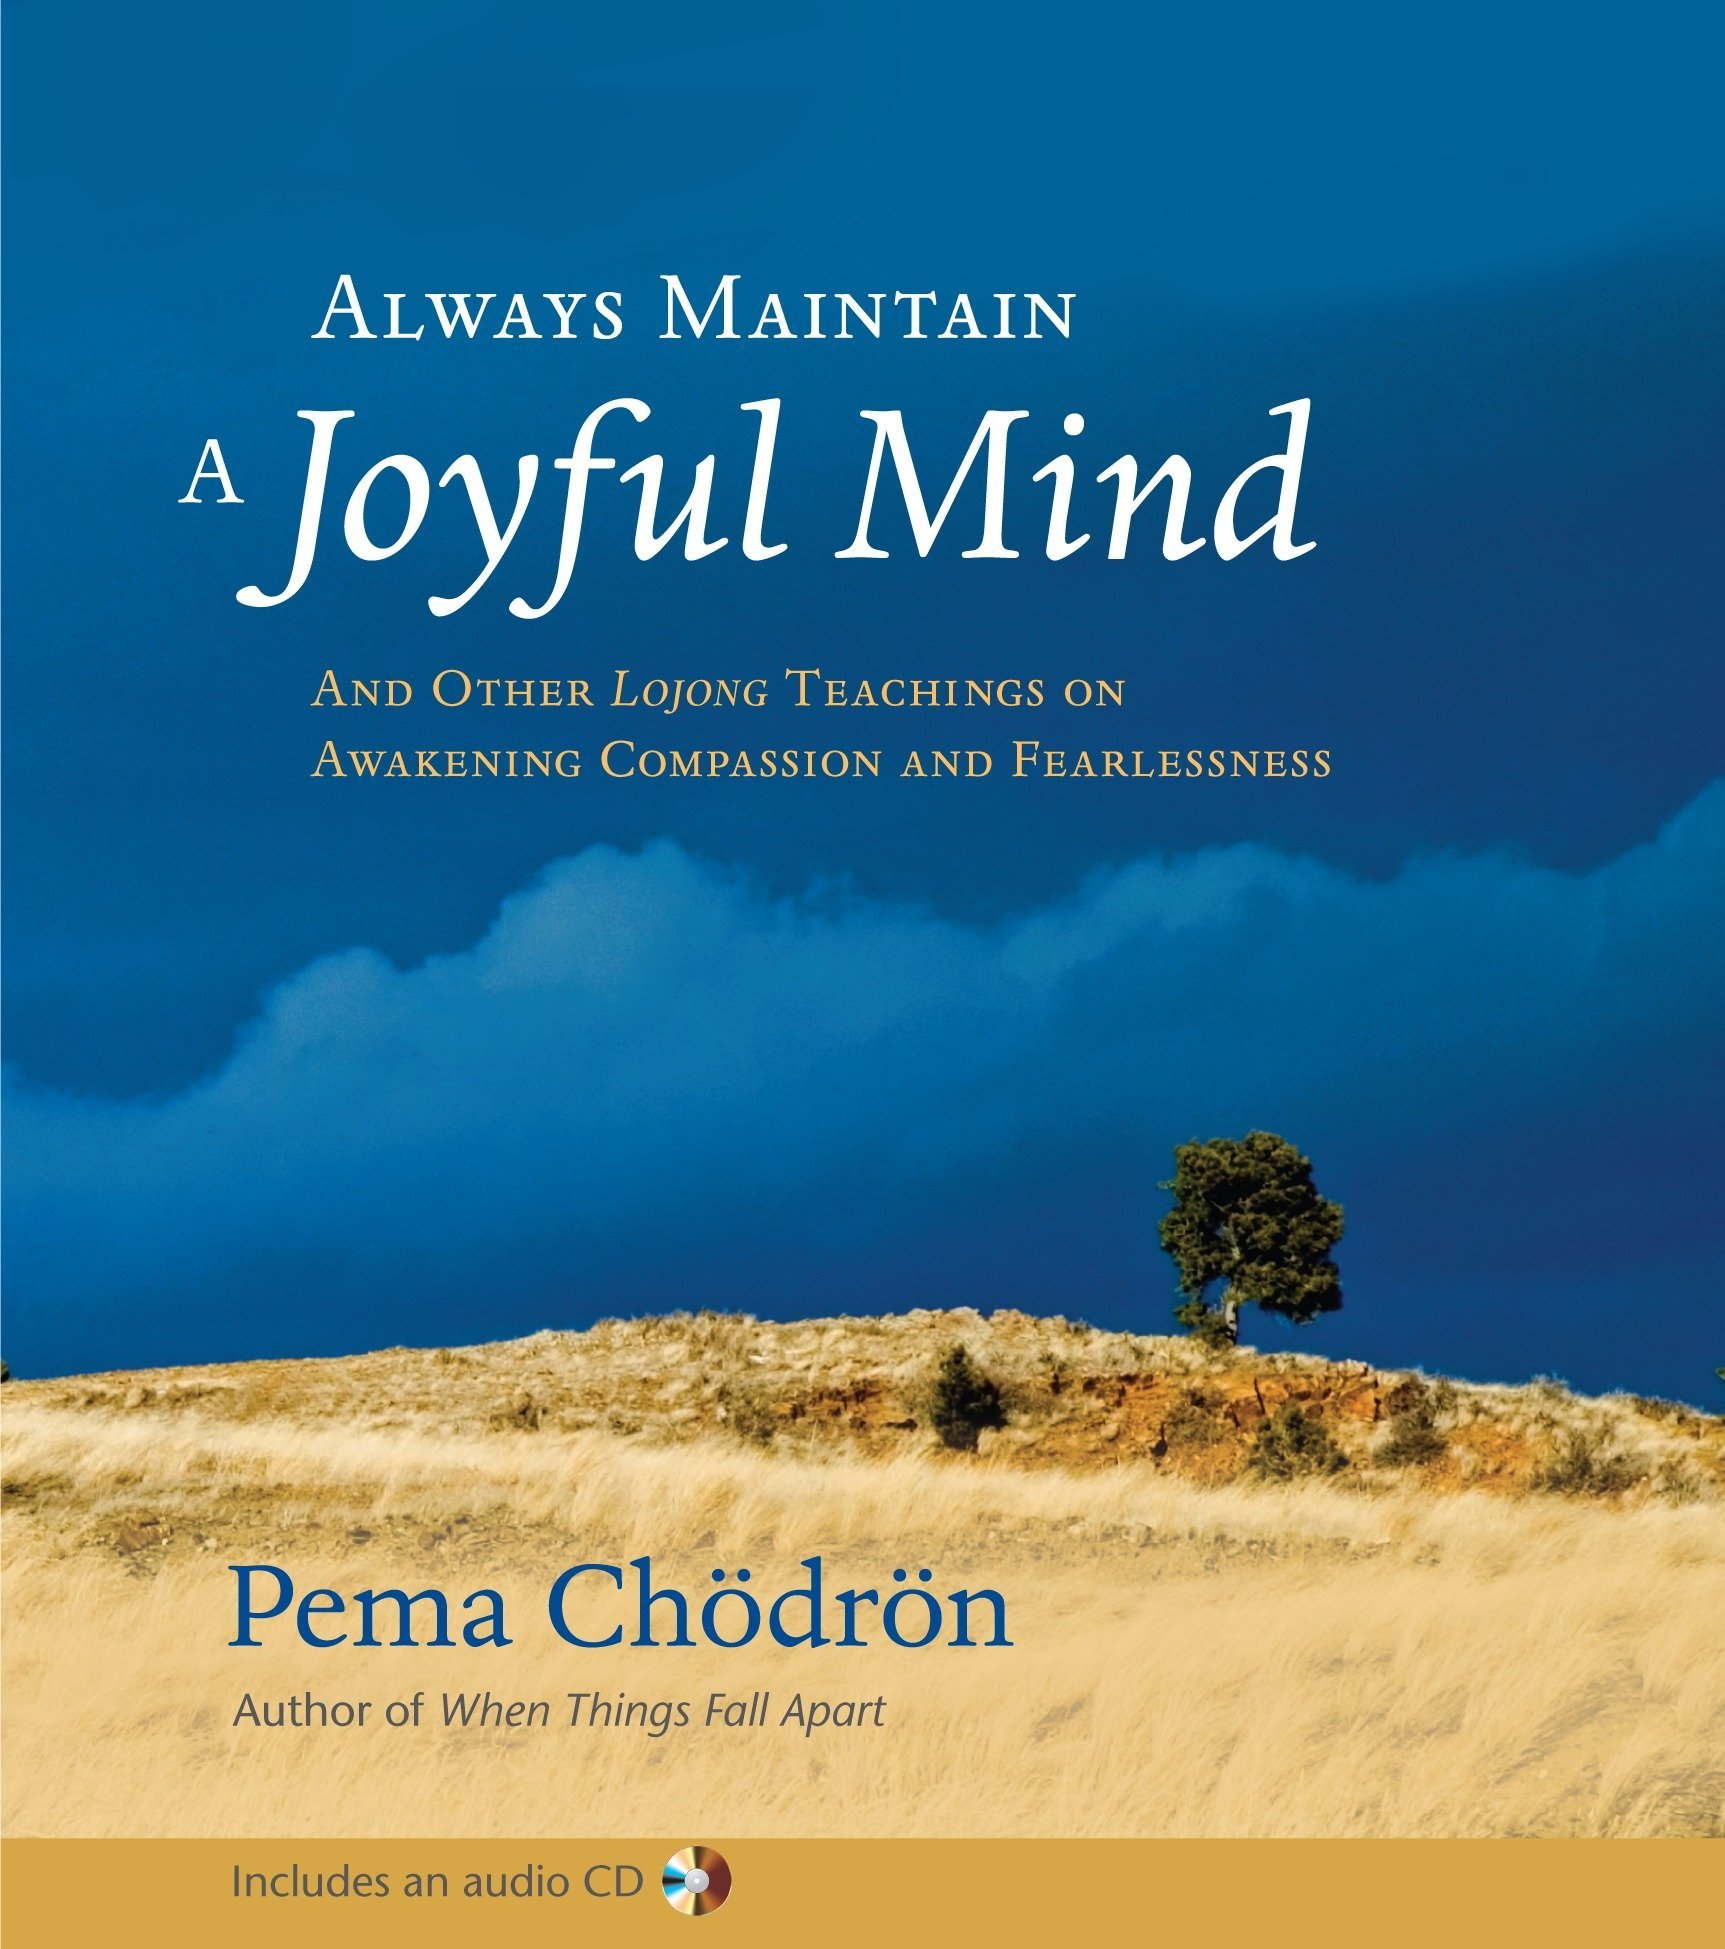 Always Maintain a Joyful Mind (Book and CD): And Other Lojong Teachings on Awakening Compassion and Fearlessness pdf